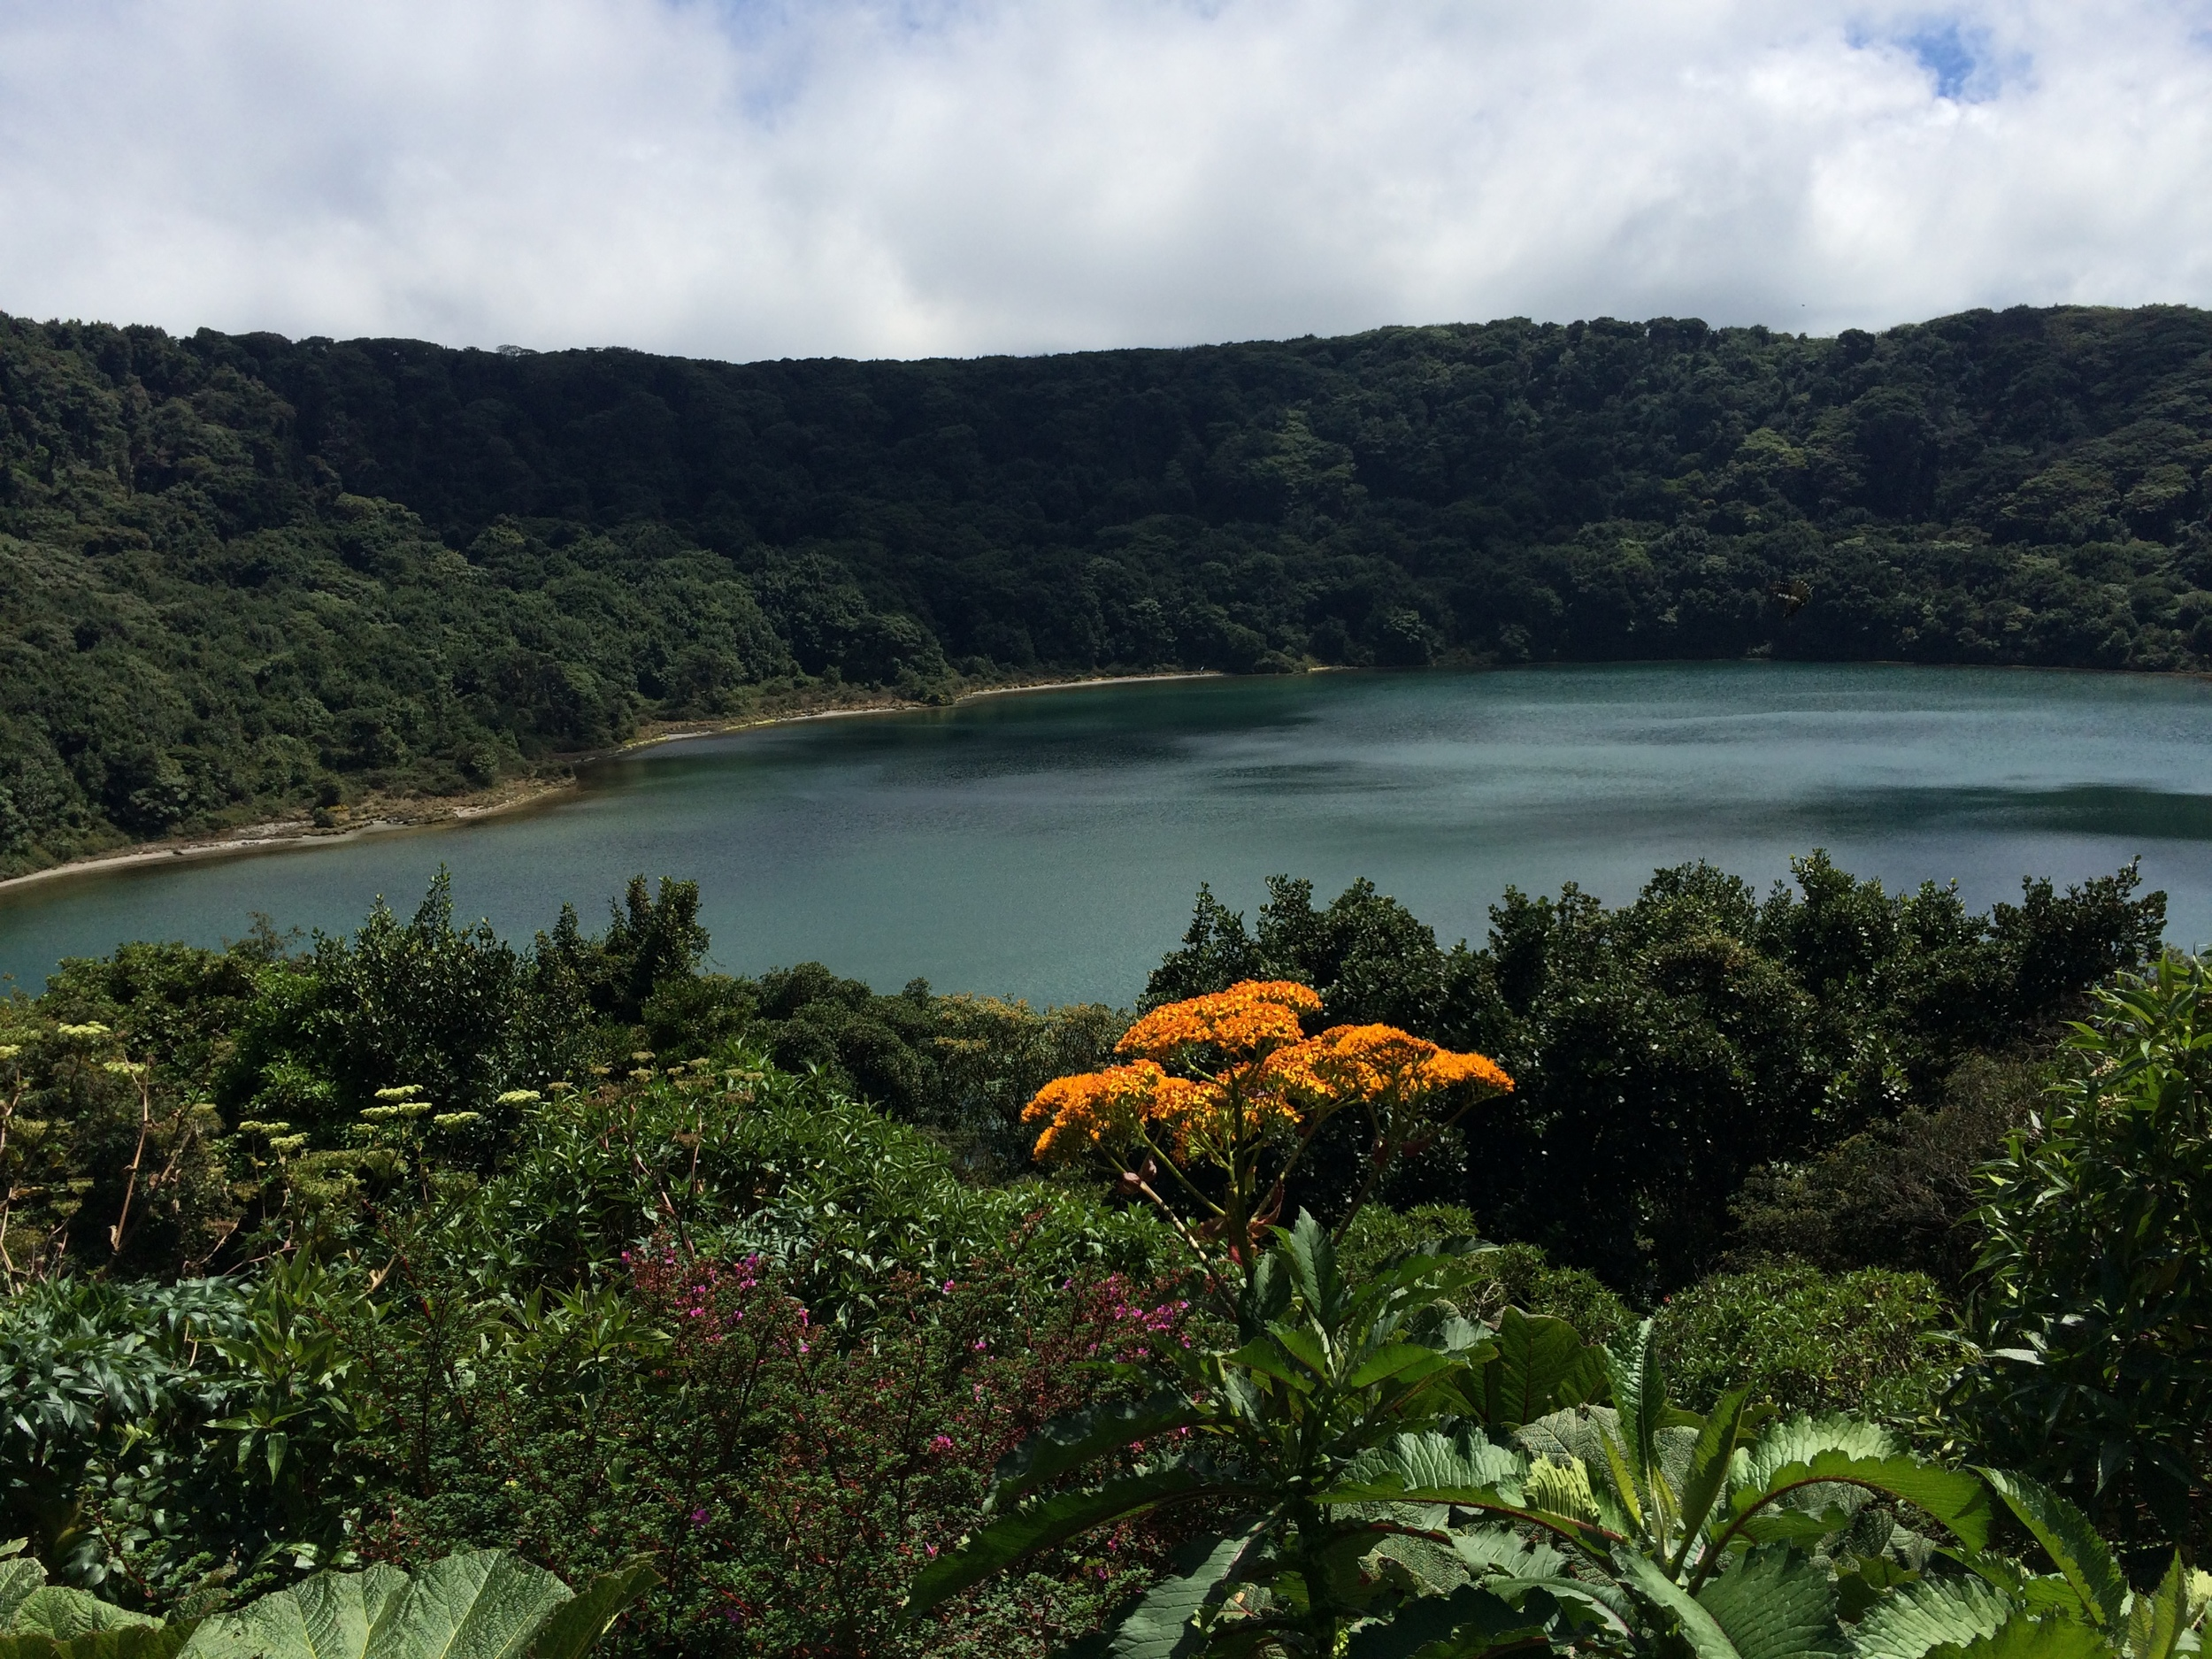 Lake-filled crater on Volcan Poas surrounded by blooming plants